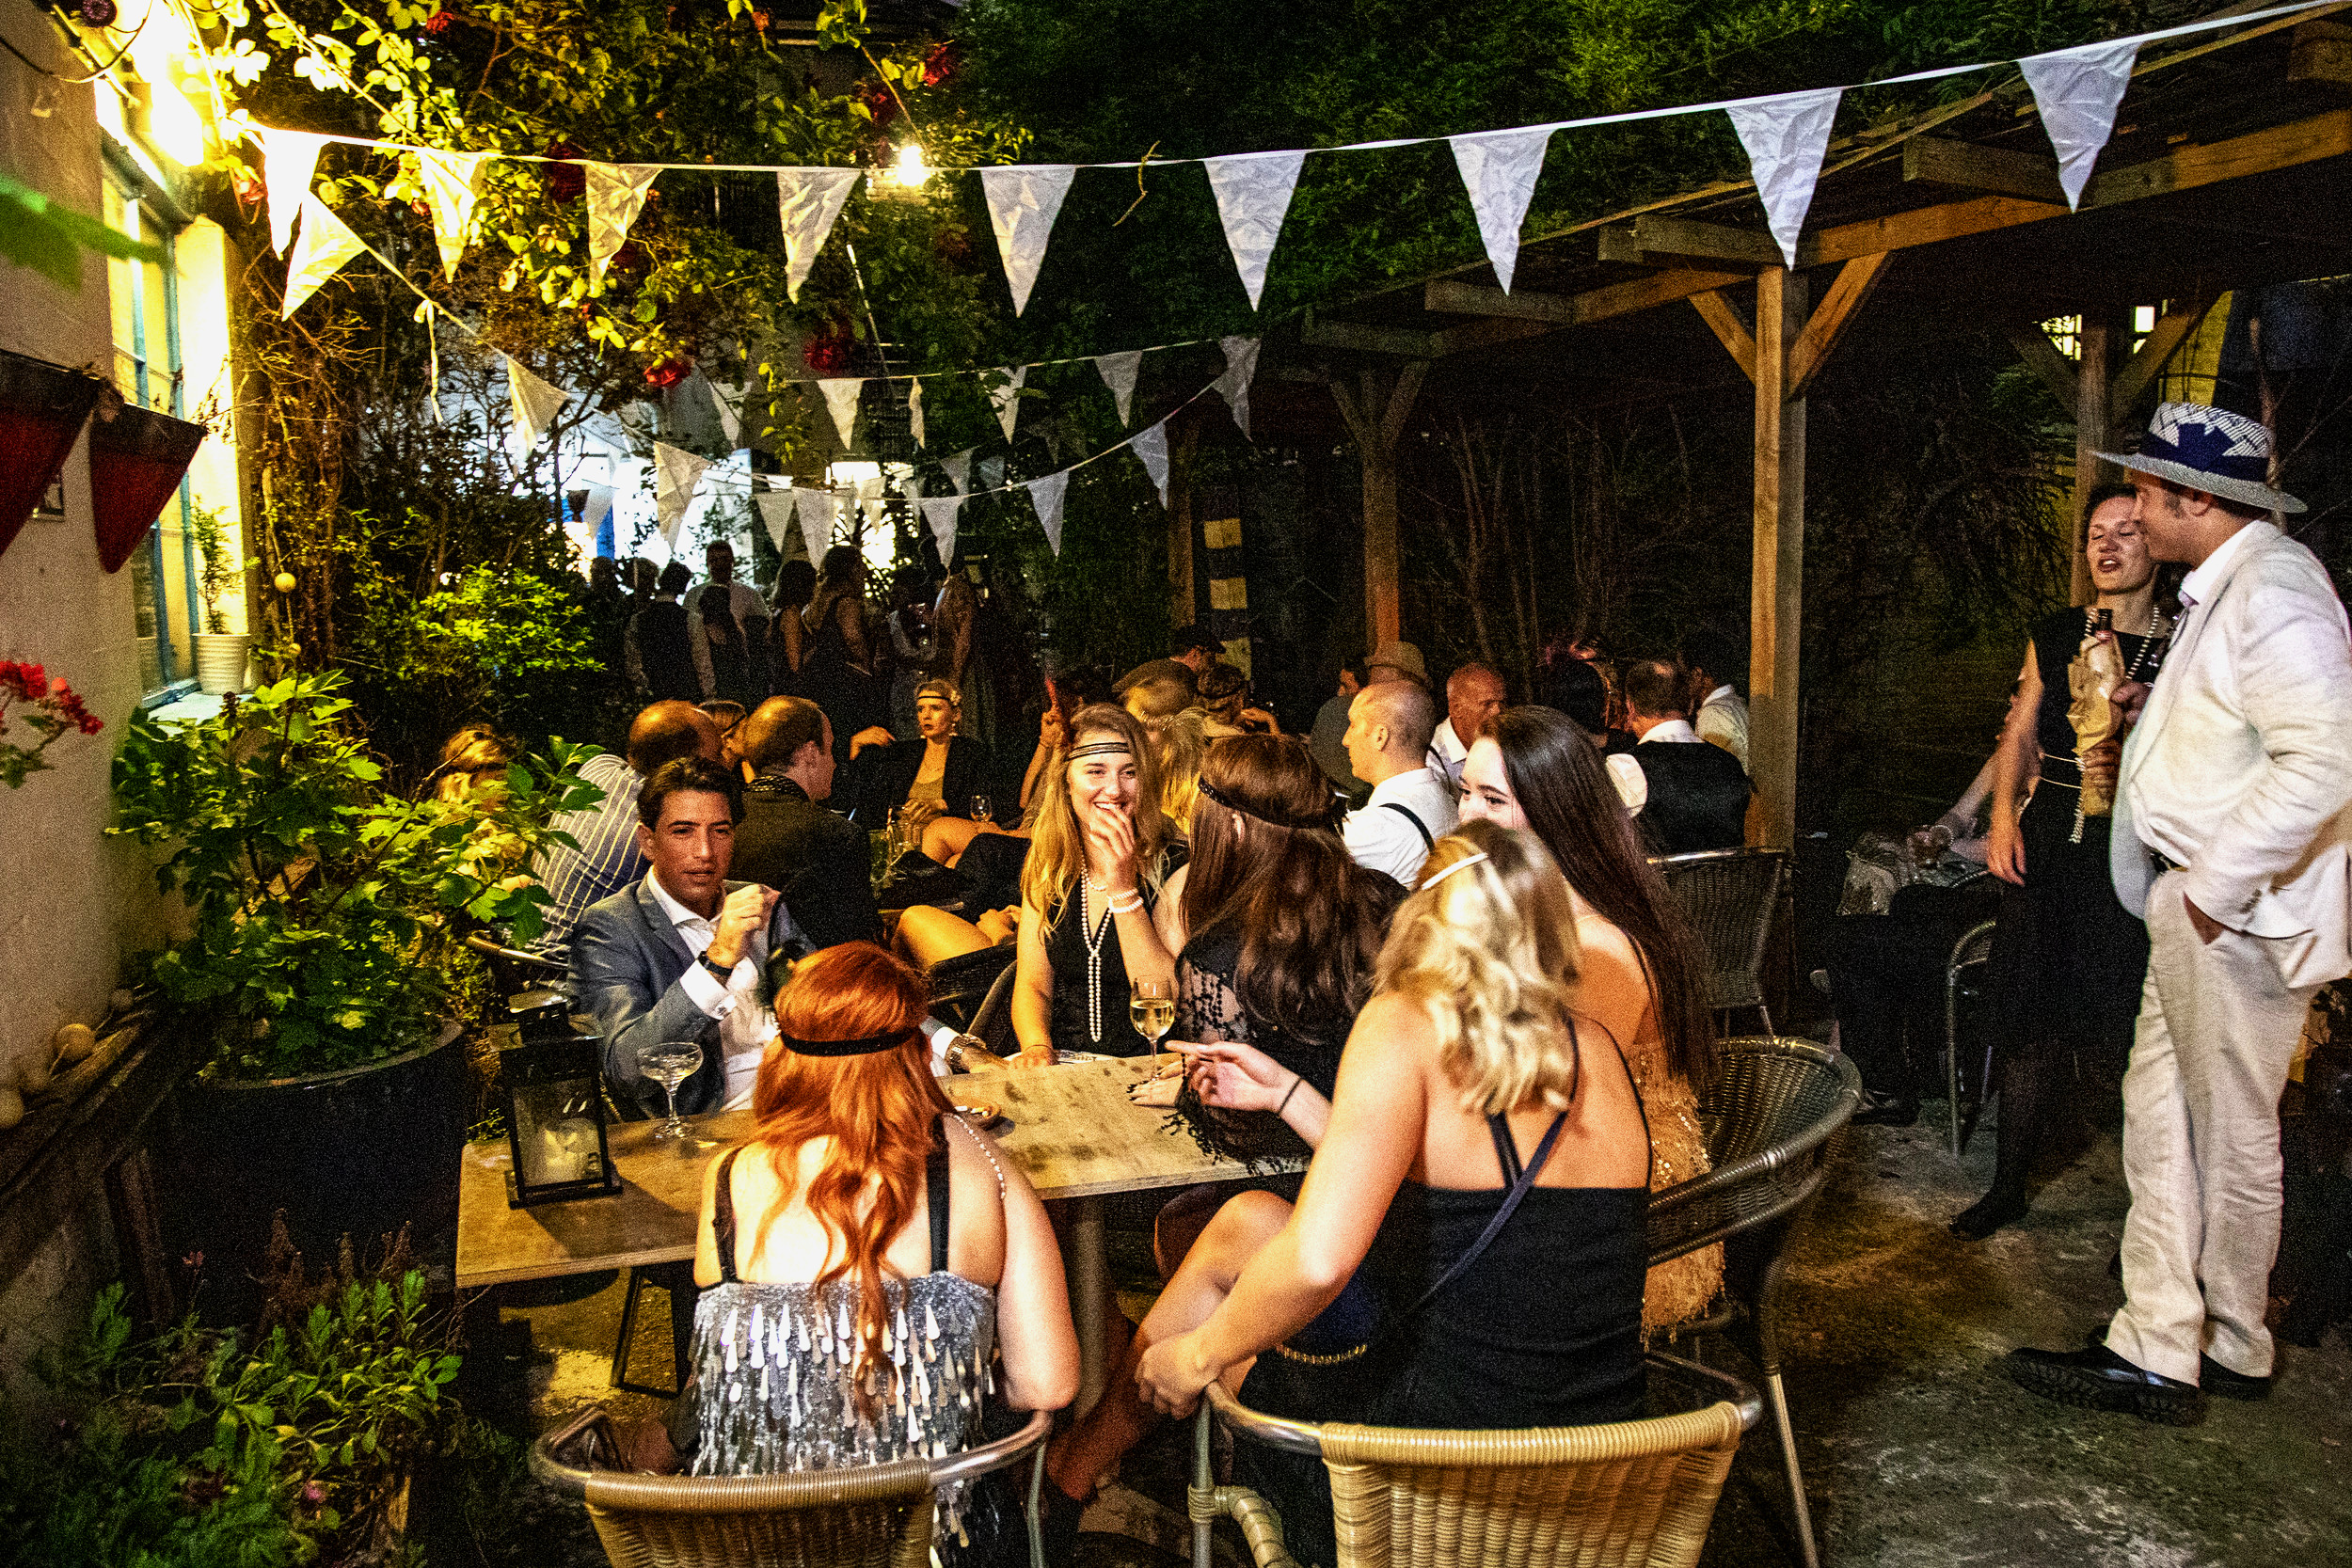 Find our secret courtyard garden, where you can emjoy an Havana cigar from our cigar bar whilst sipping on your cocktail.